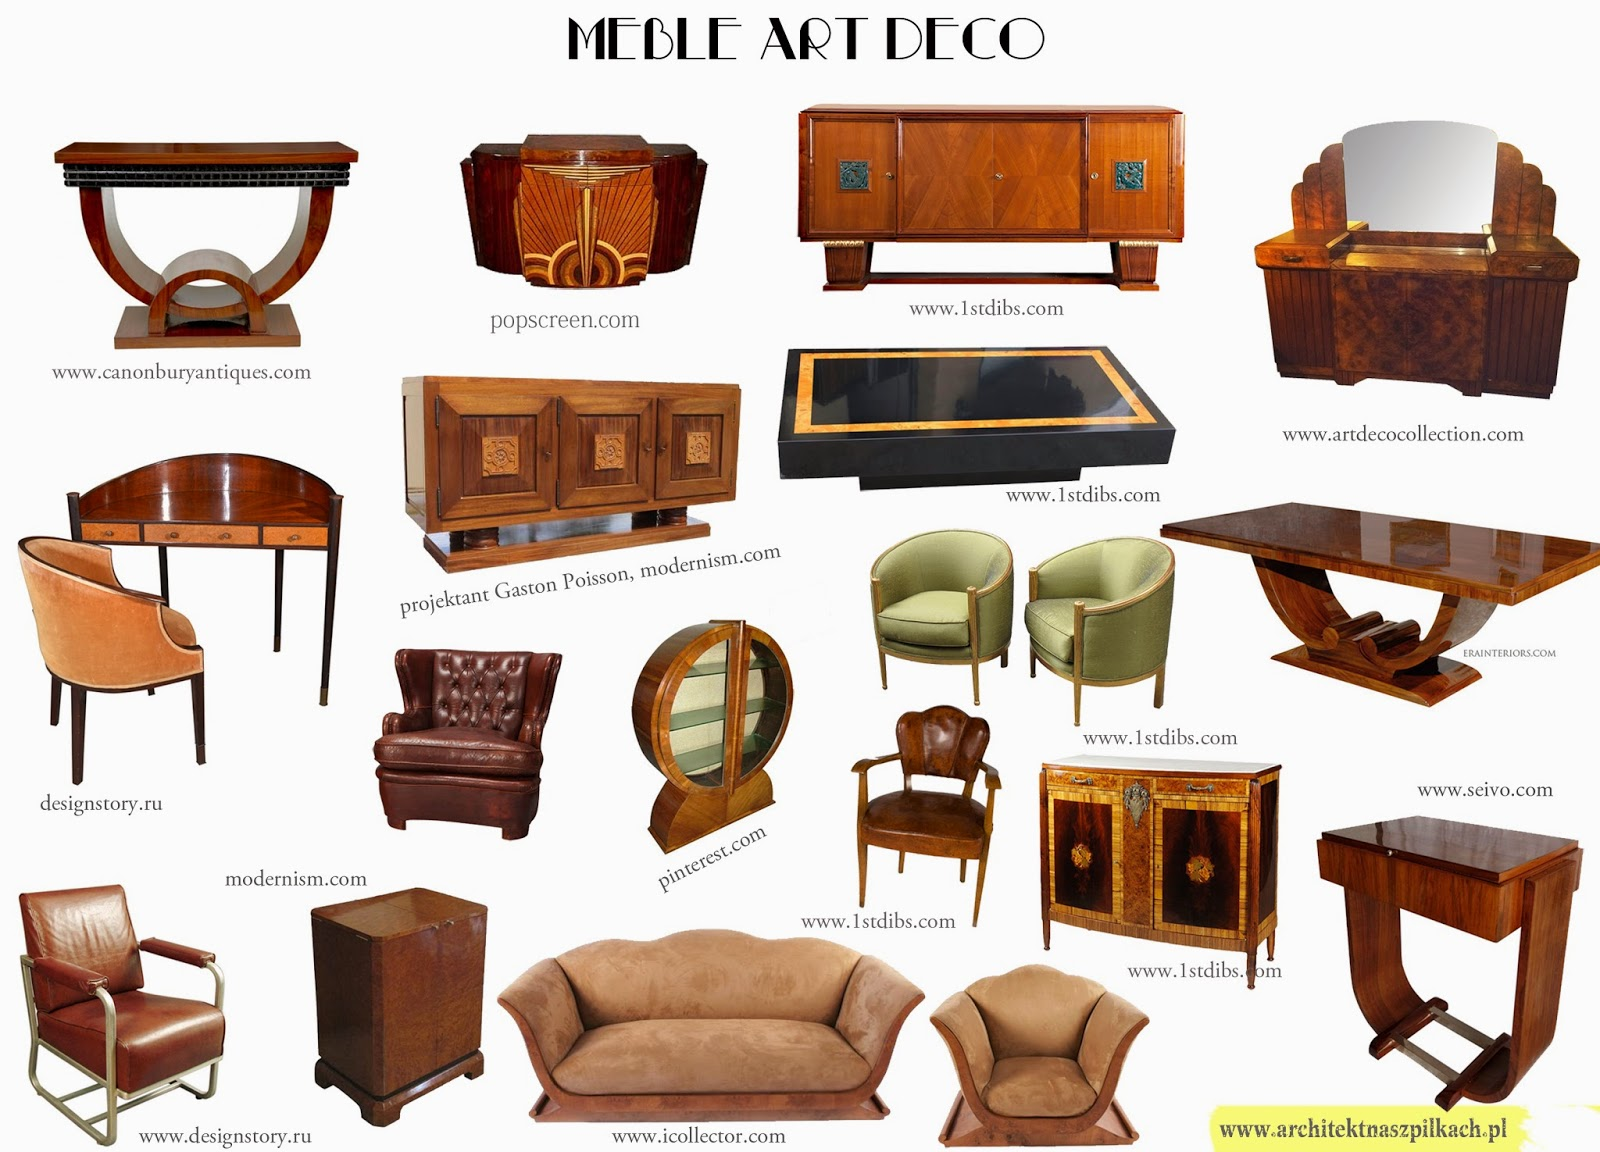 Meble art deco